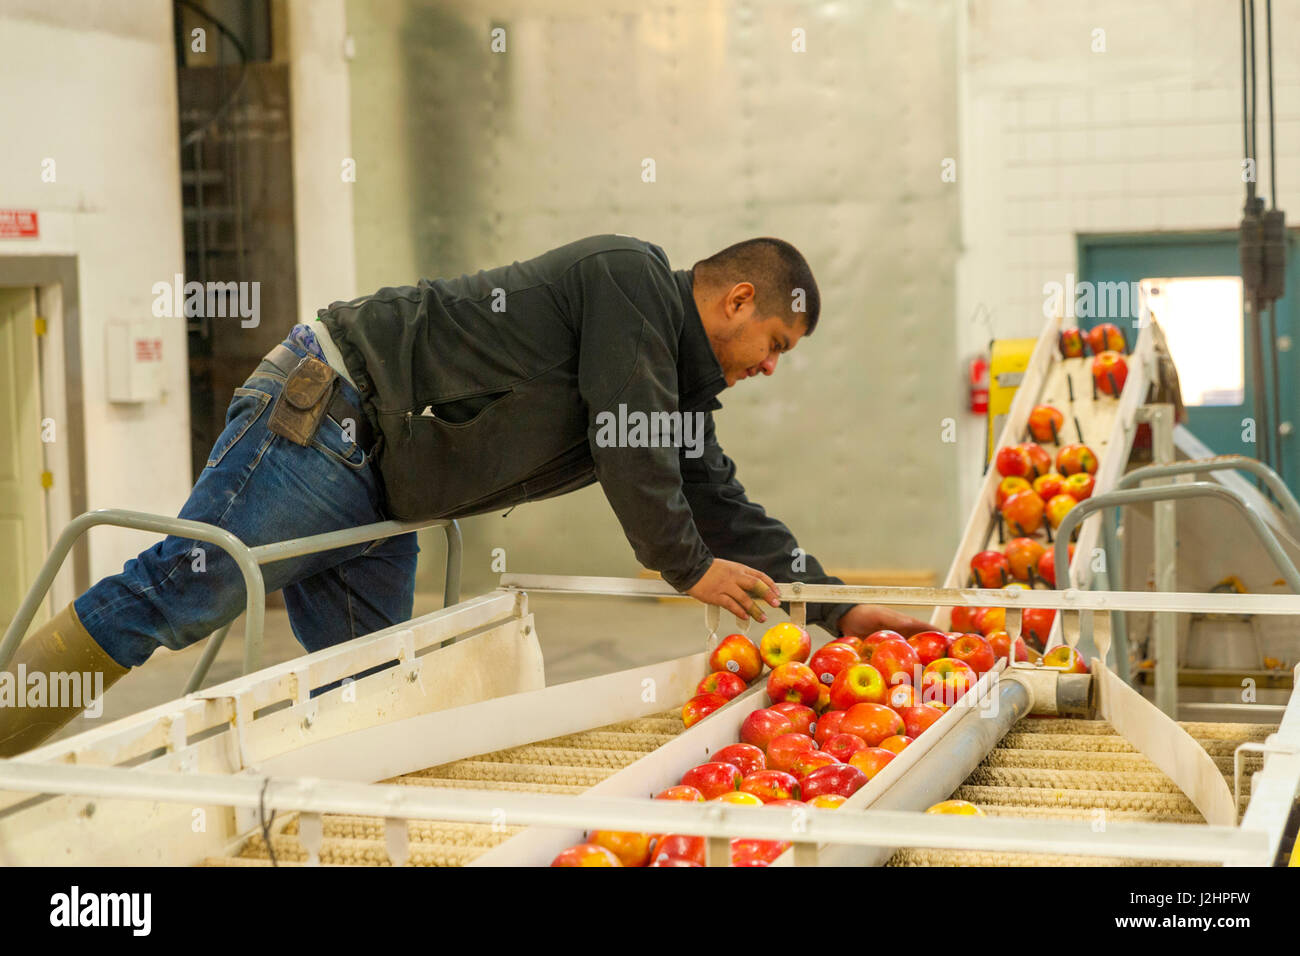 USA, Washington, Yakima. Production worker inspects apples to be made into apple cider at Tieton Cider Works. Stock Photo